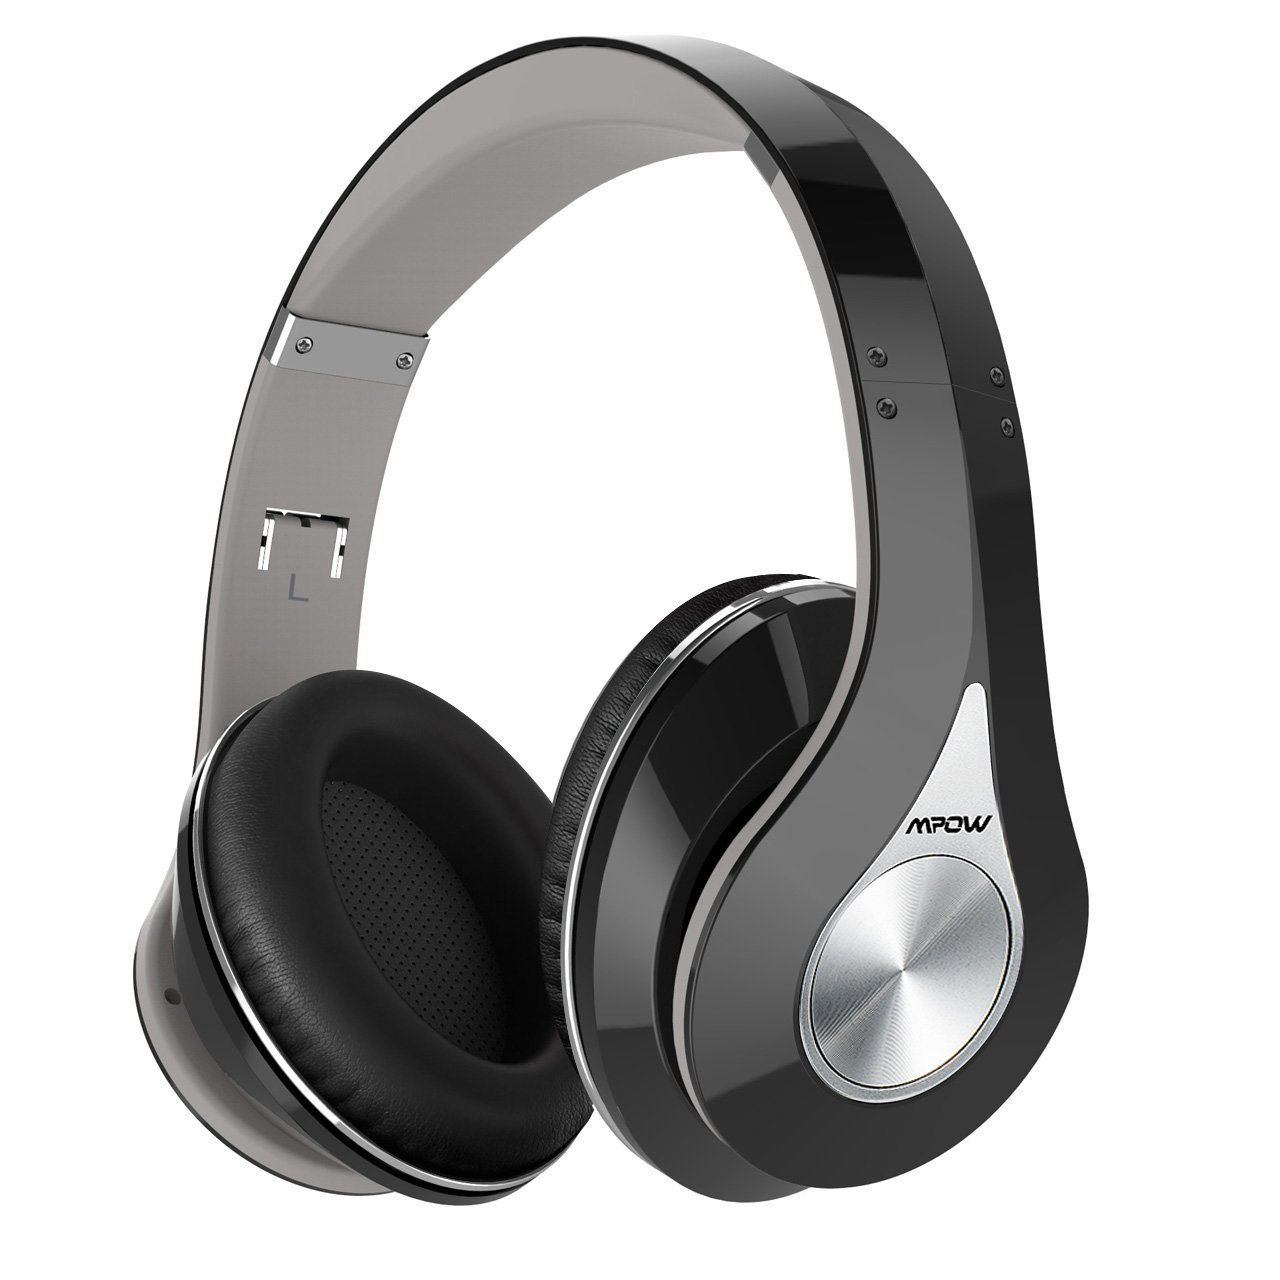 Amazon.com: Mpow 059 Bluetooth Headphones Over Ear, Hi-Fi Stereo ...